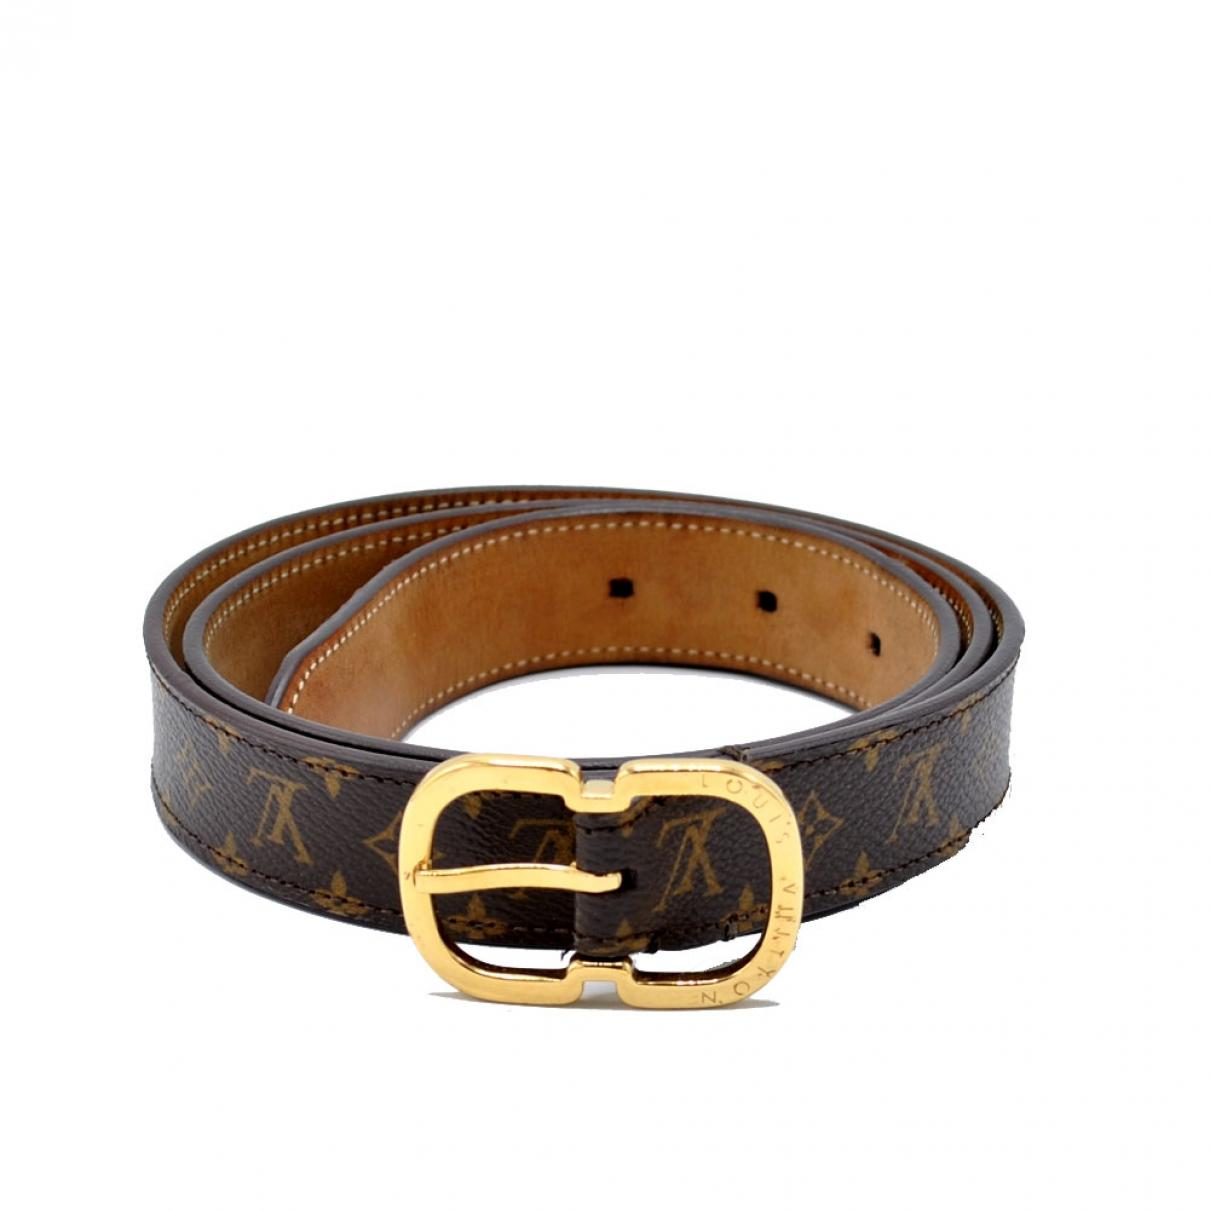 ee9518409b28 Louis Vuitton. Women s Brown Leather Belt. £209 From Vestiaire Collective